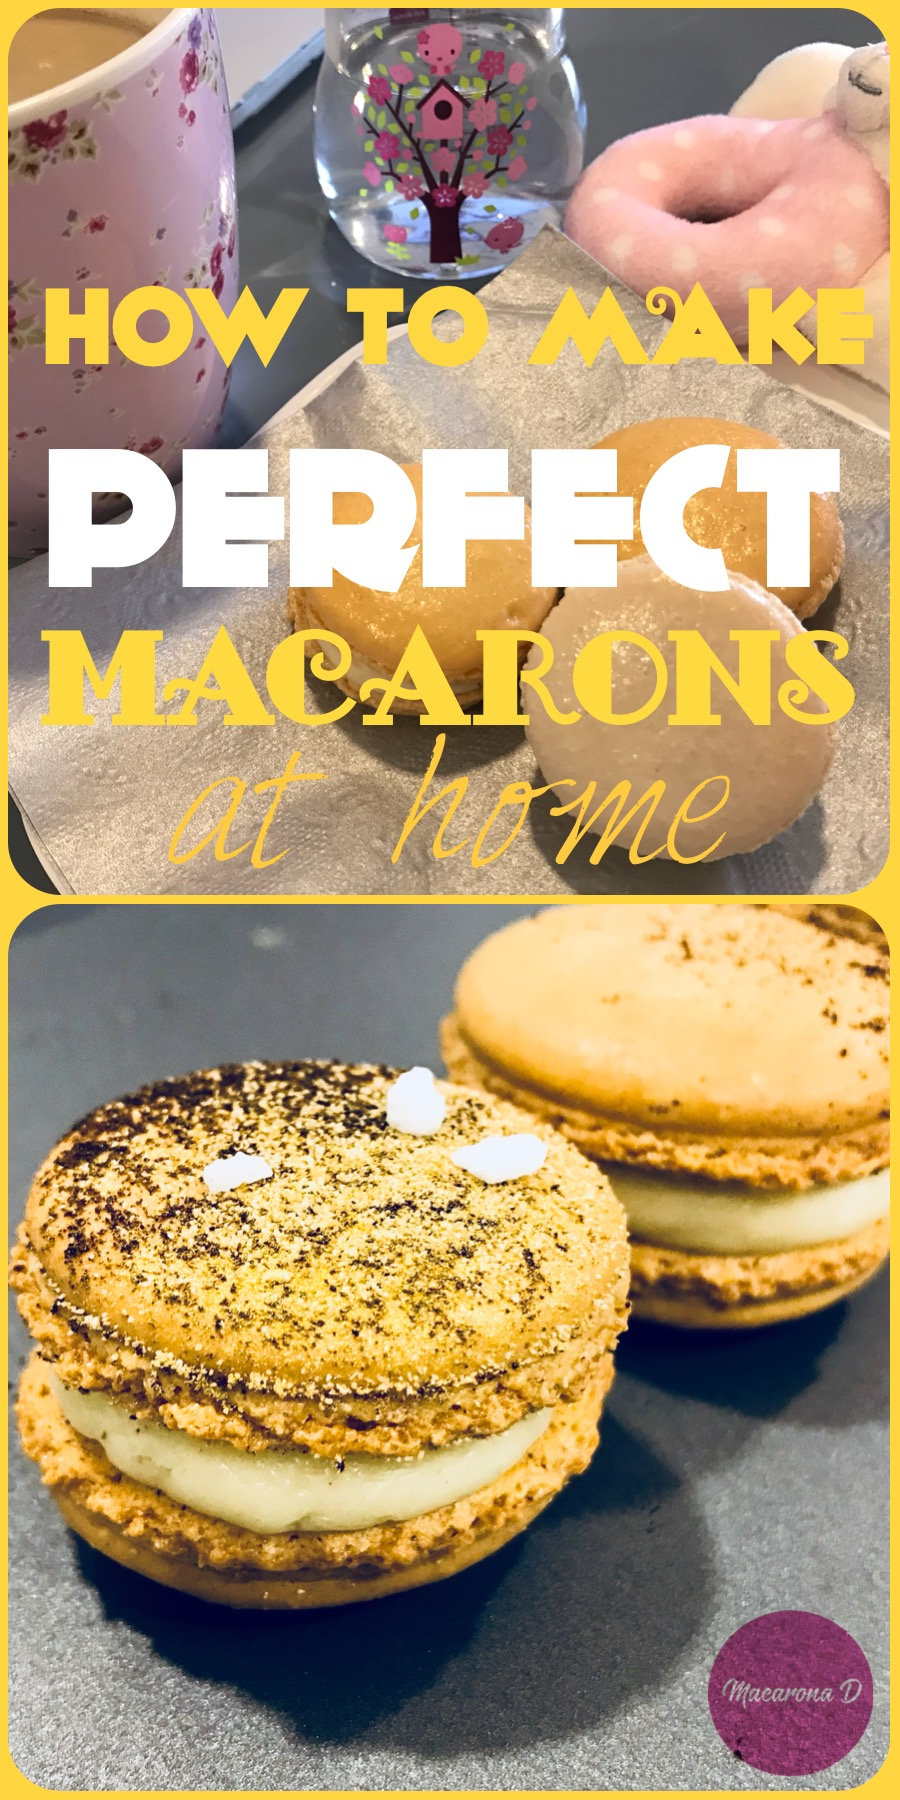 make macarons at home